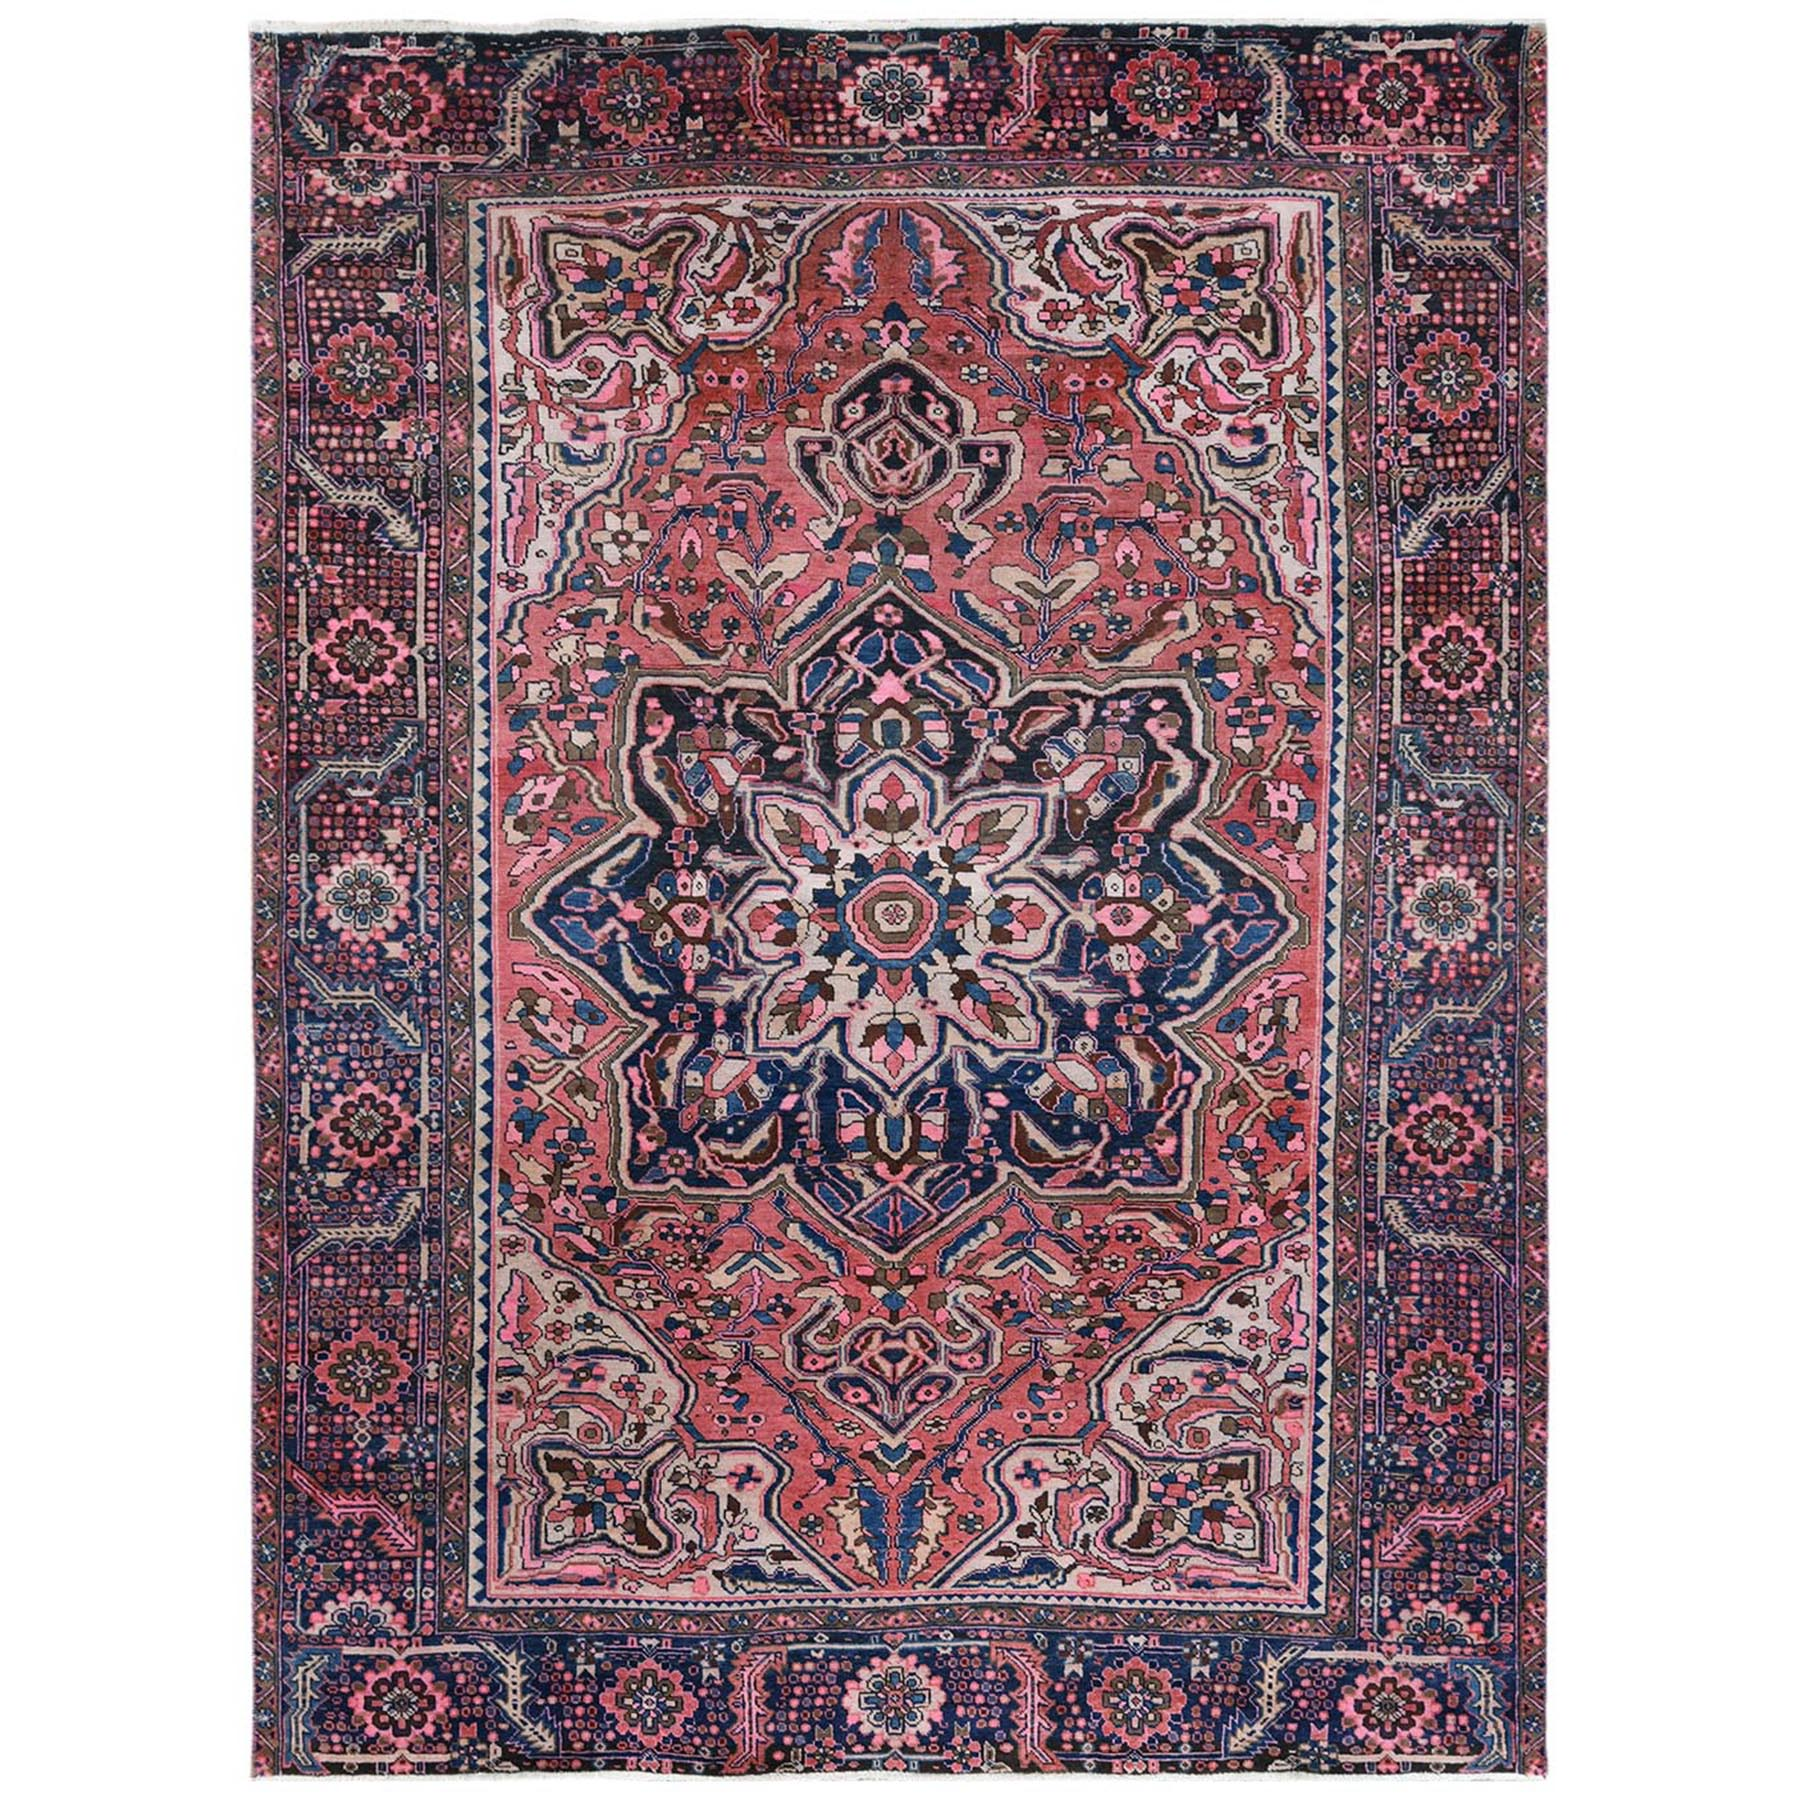 Fetneh Collection And Vintage Overdyed Collection Hand Knotted Pink Rug No: 1122502